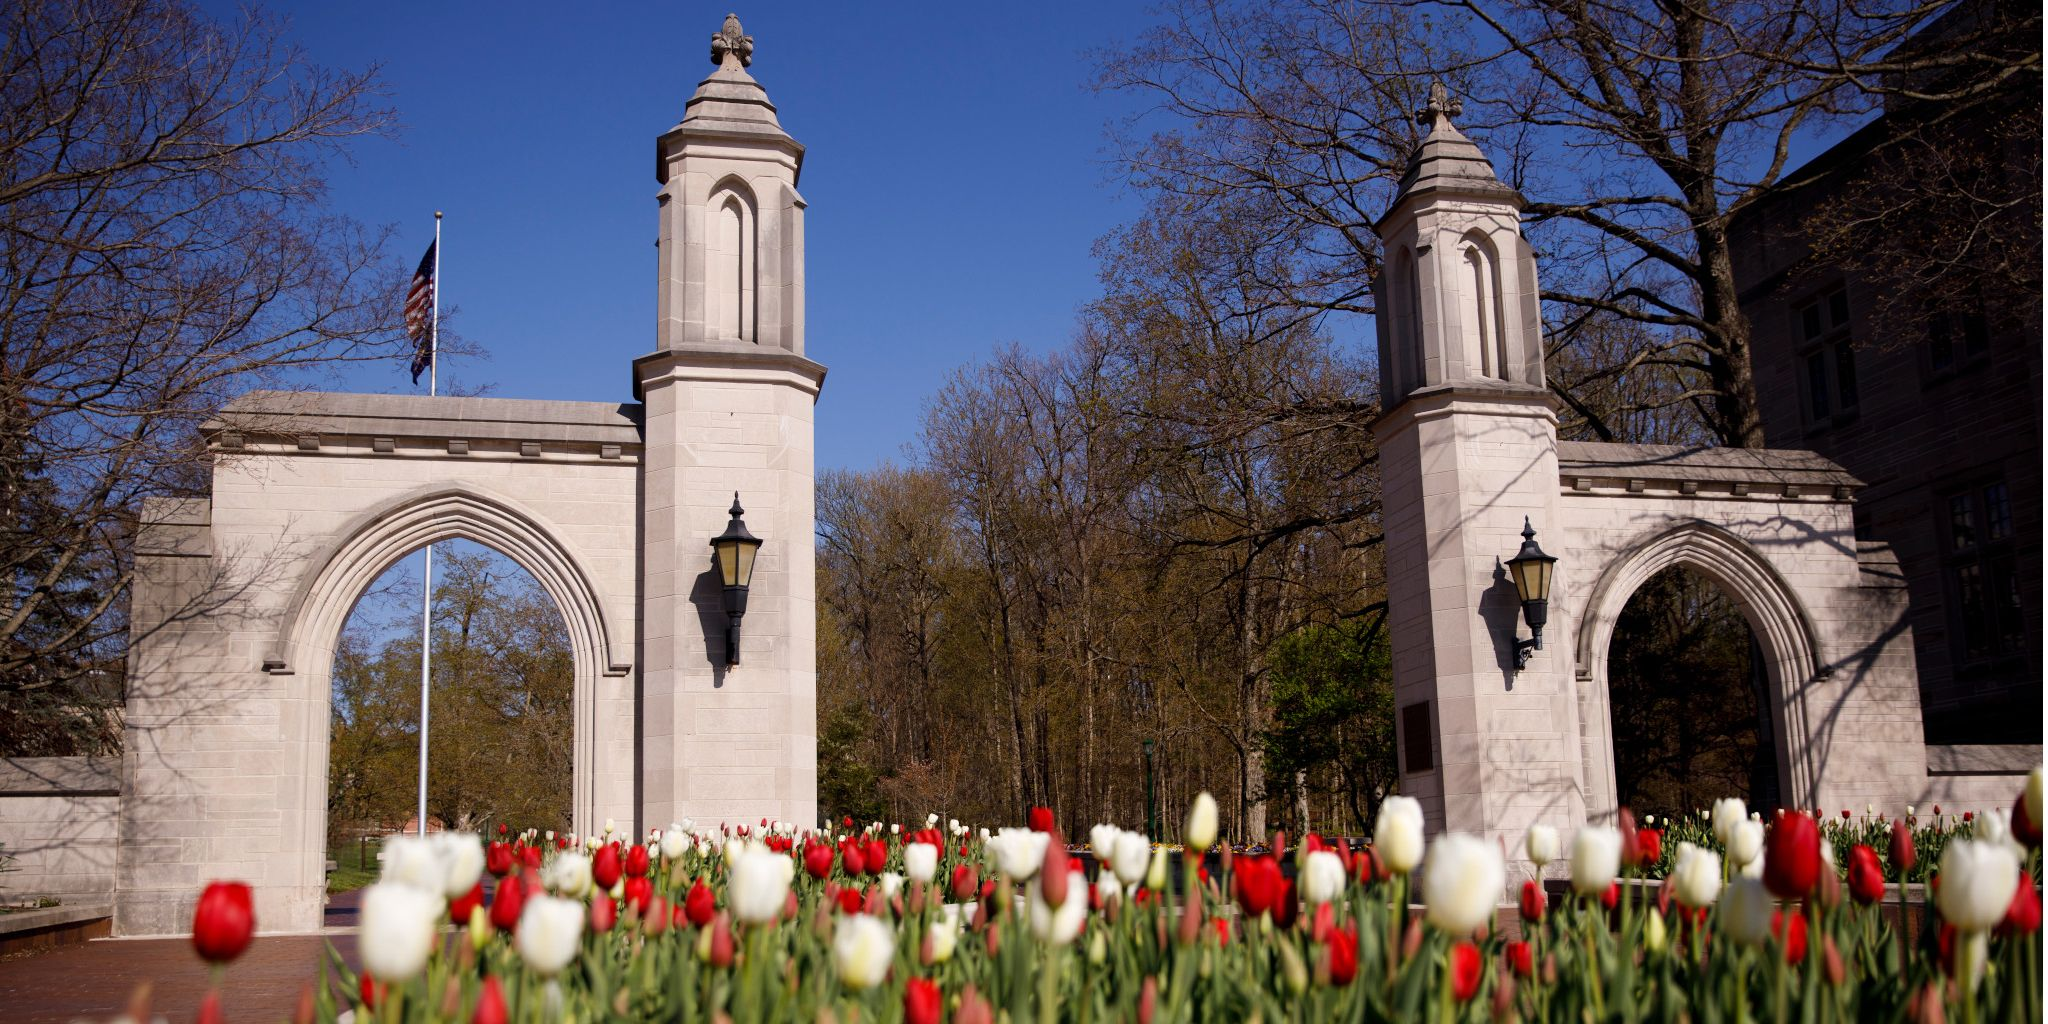 Red and white tulips blooming in front of the Sample Gates